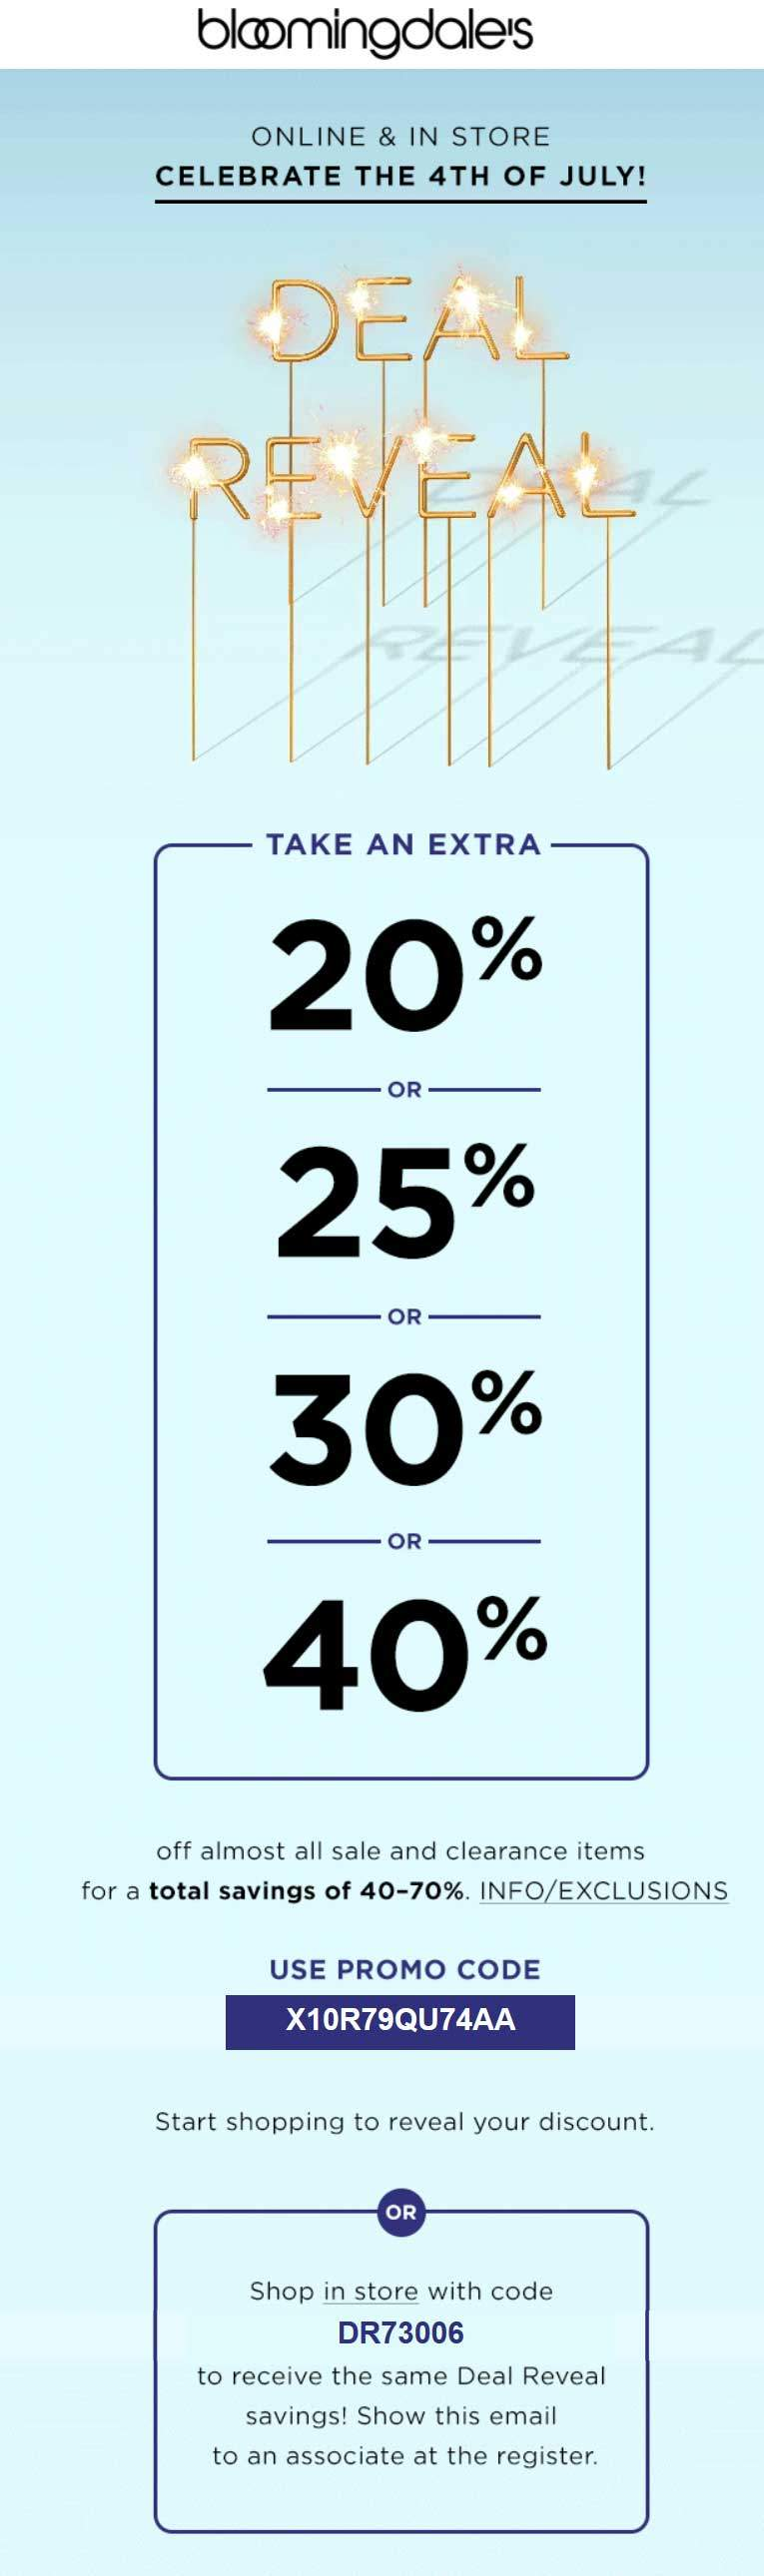 Bloomingdales Coupon January 2018 20-40% off sale & clearance at Bloomingdales, or online via promo code X10R79QU74AA